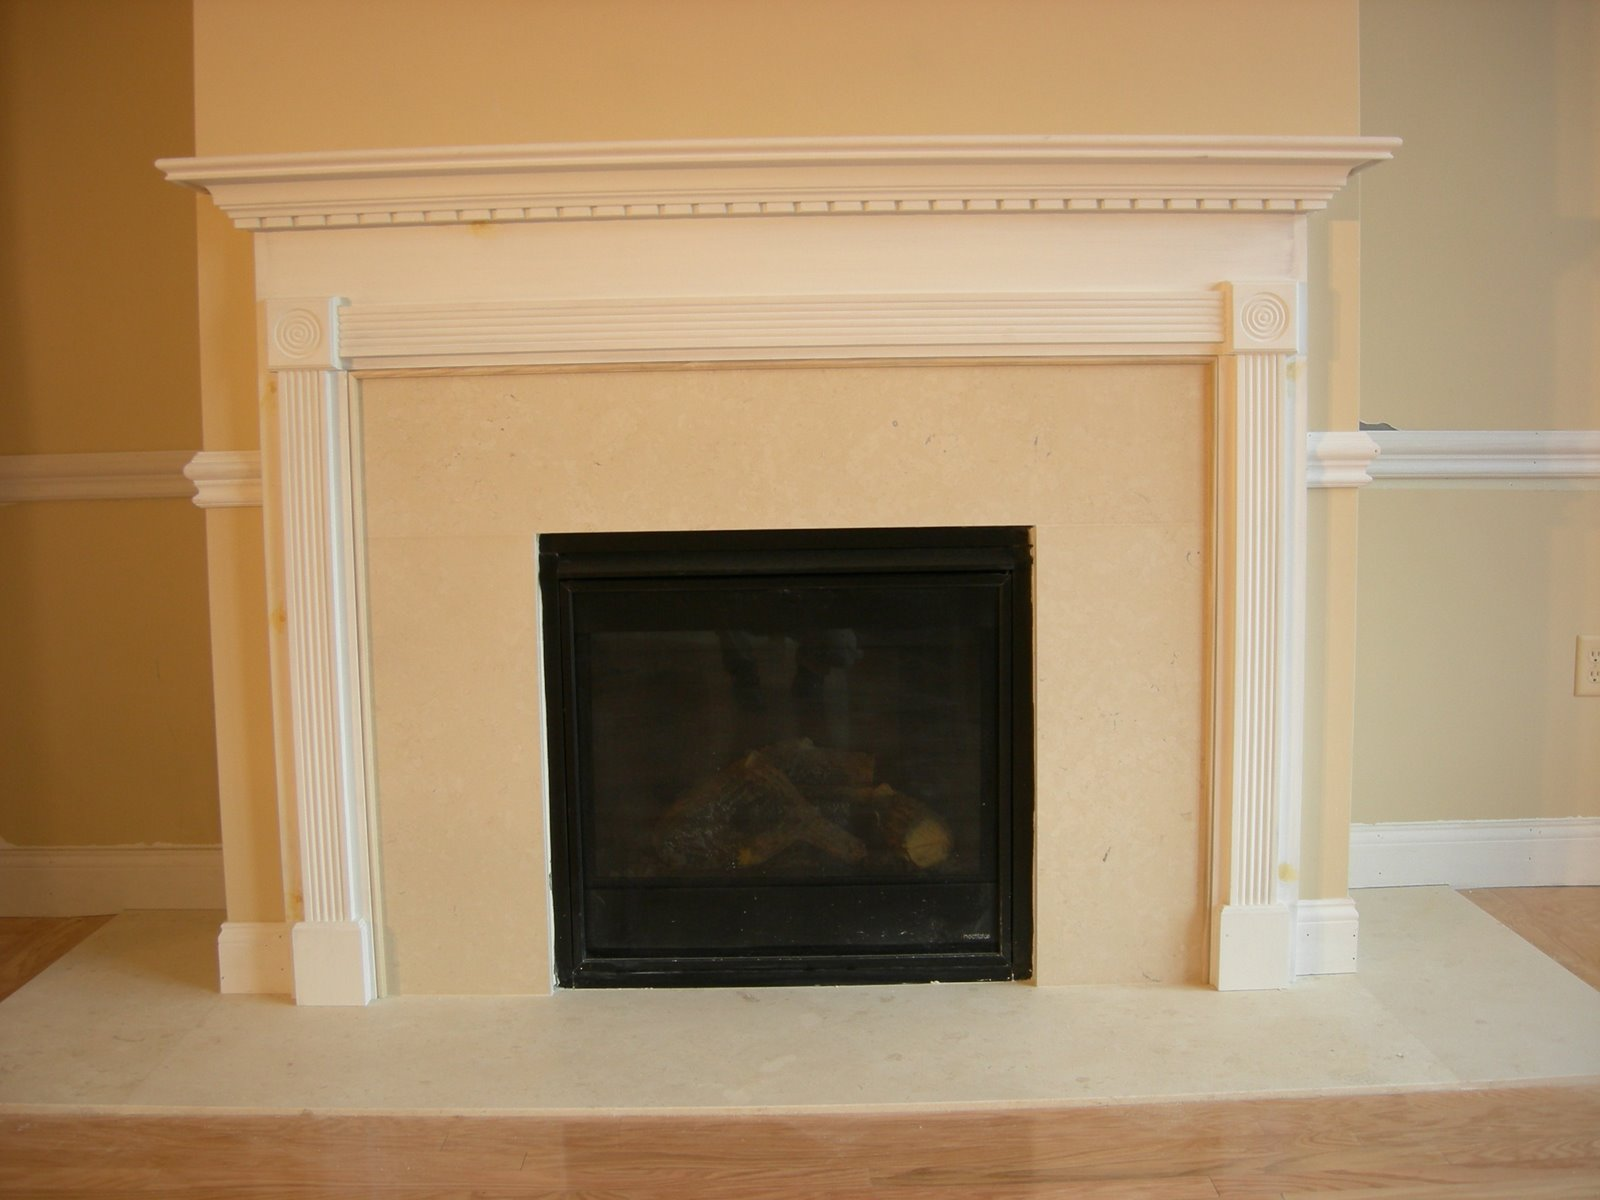 Installing A New Fireplace Mantel - A Concord Carpenter